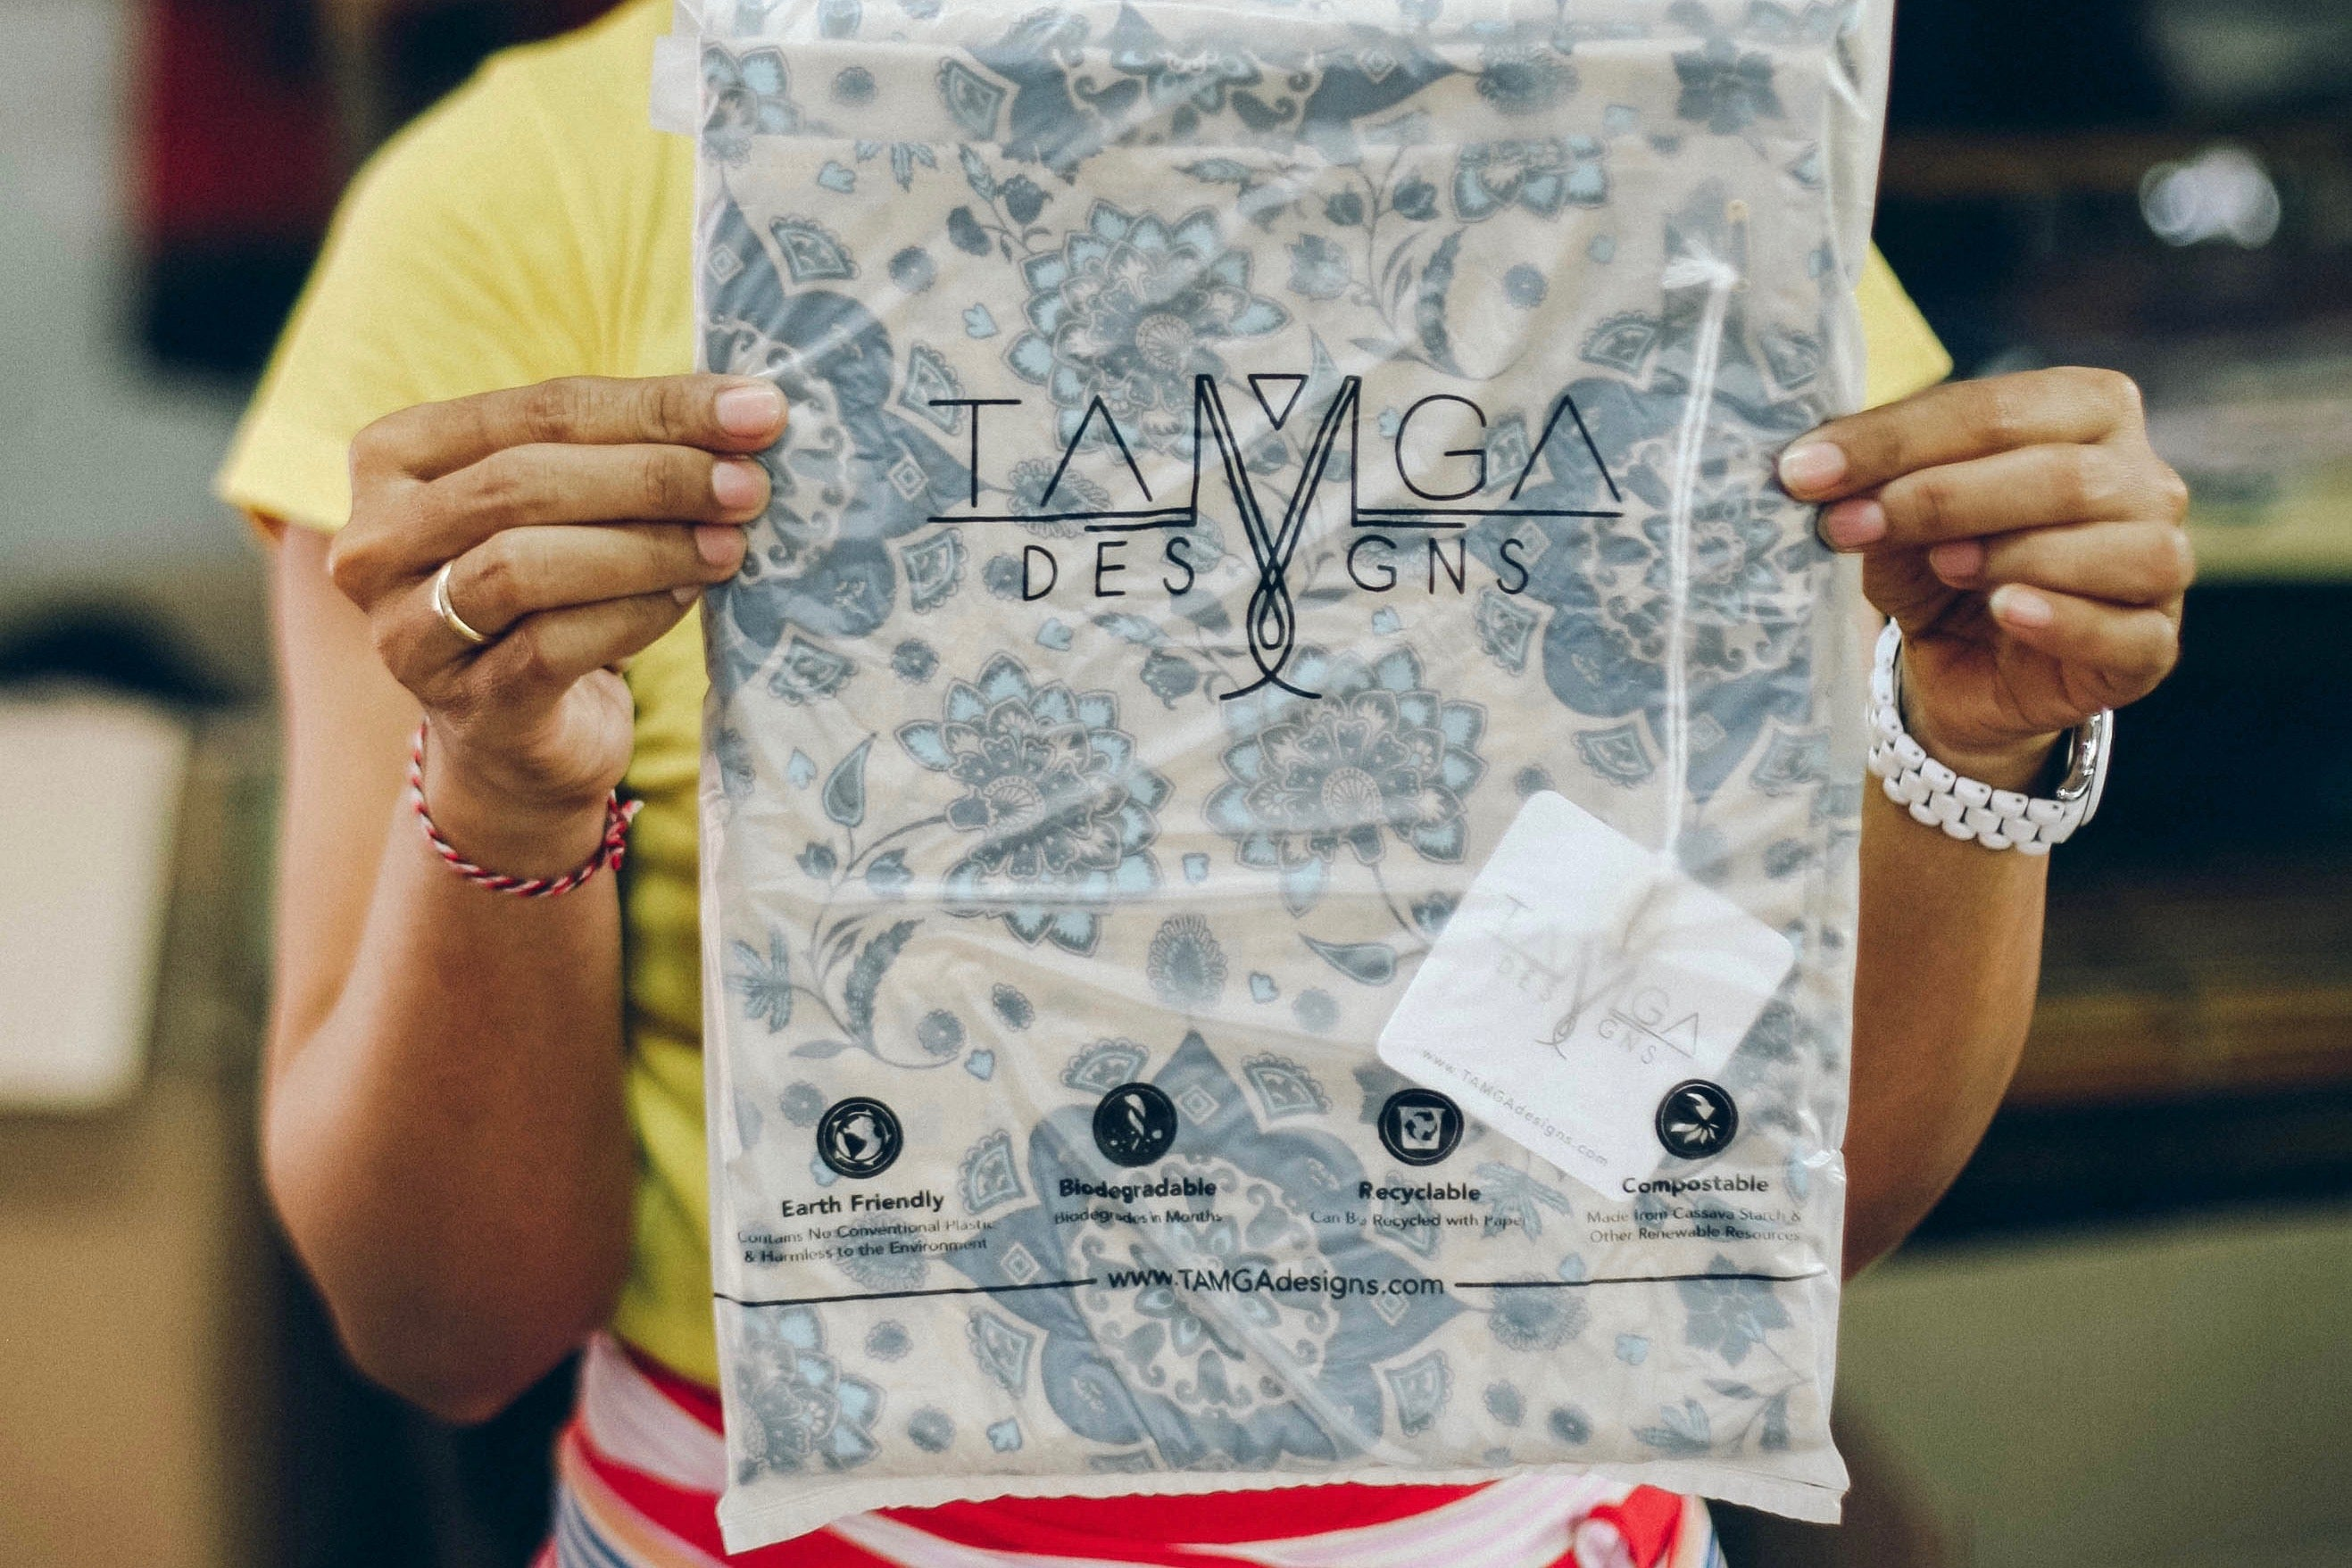 Compostable and biodegradable garment bags used by TAMGA Designs.